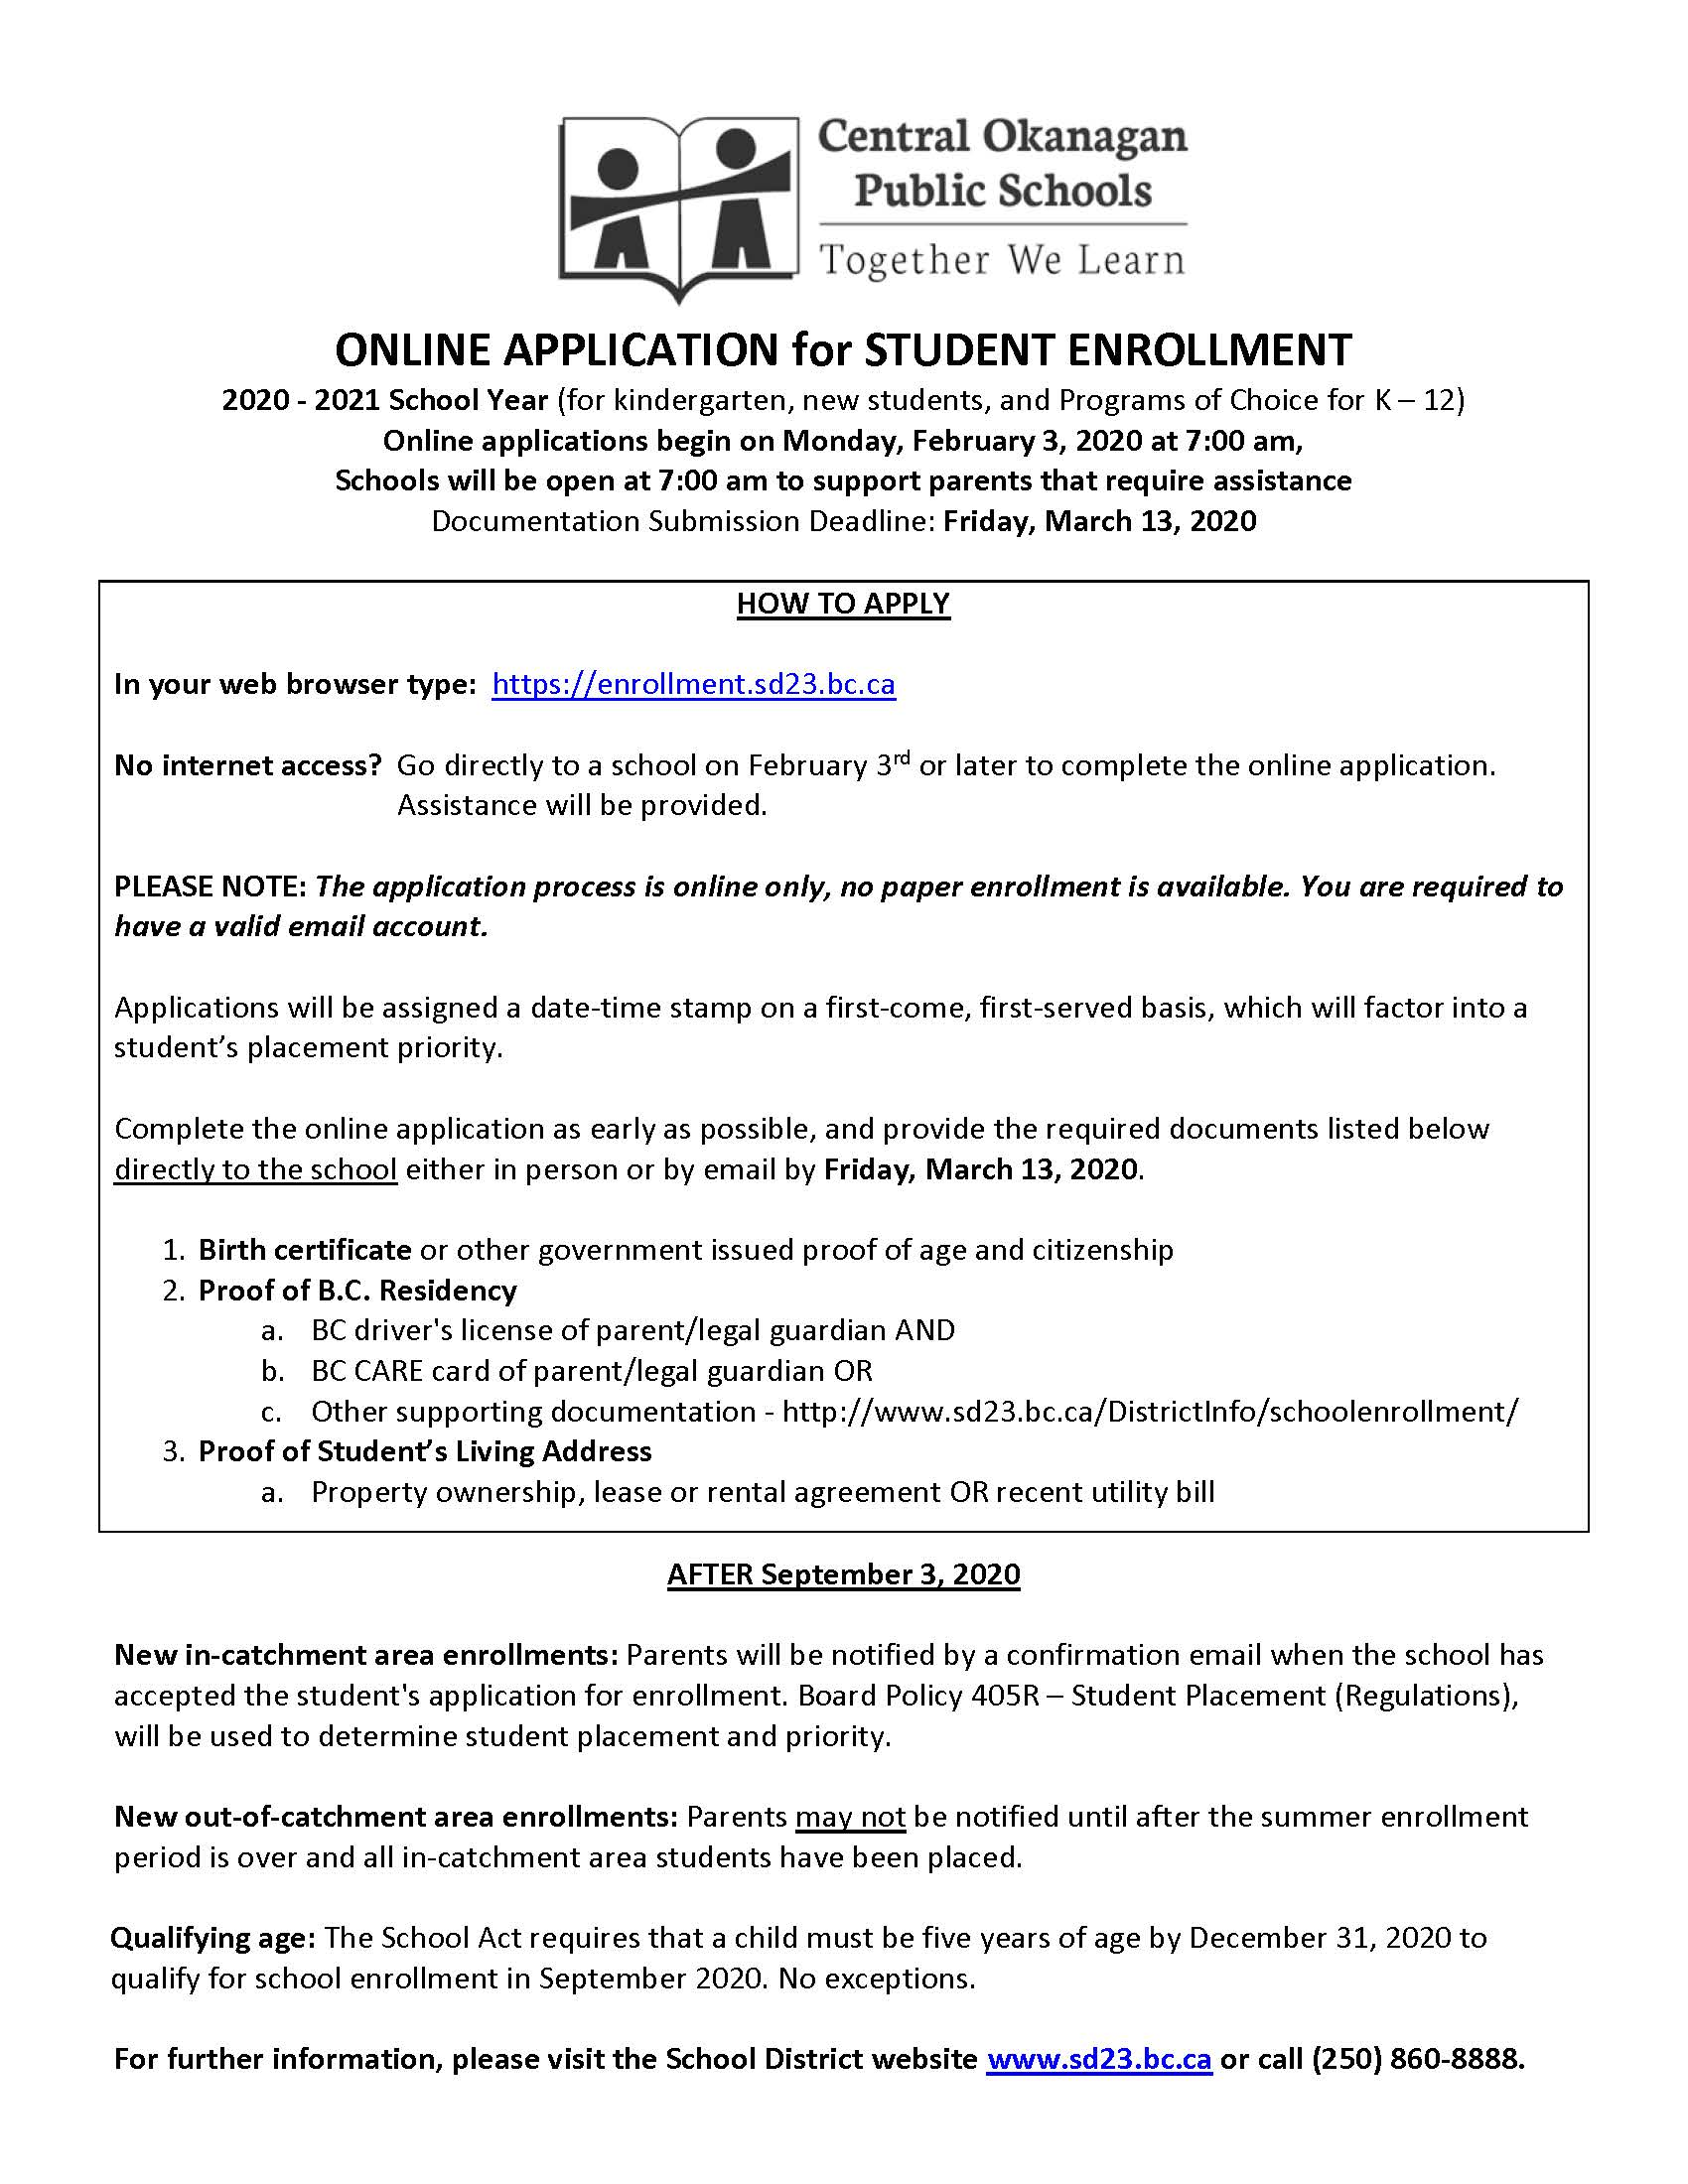 Spring Enrollment Application Process 2020-2021